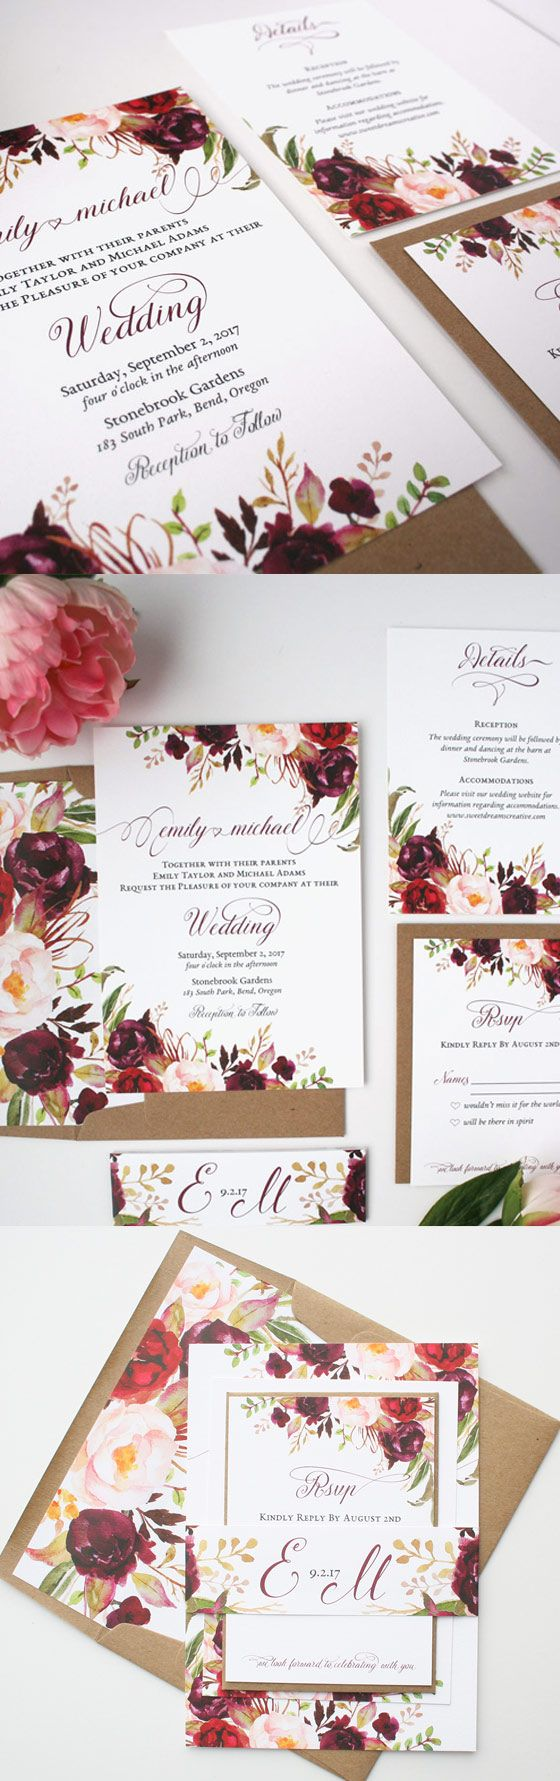 Love these burgundy & blush wedding invitations!